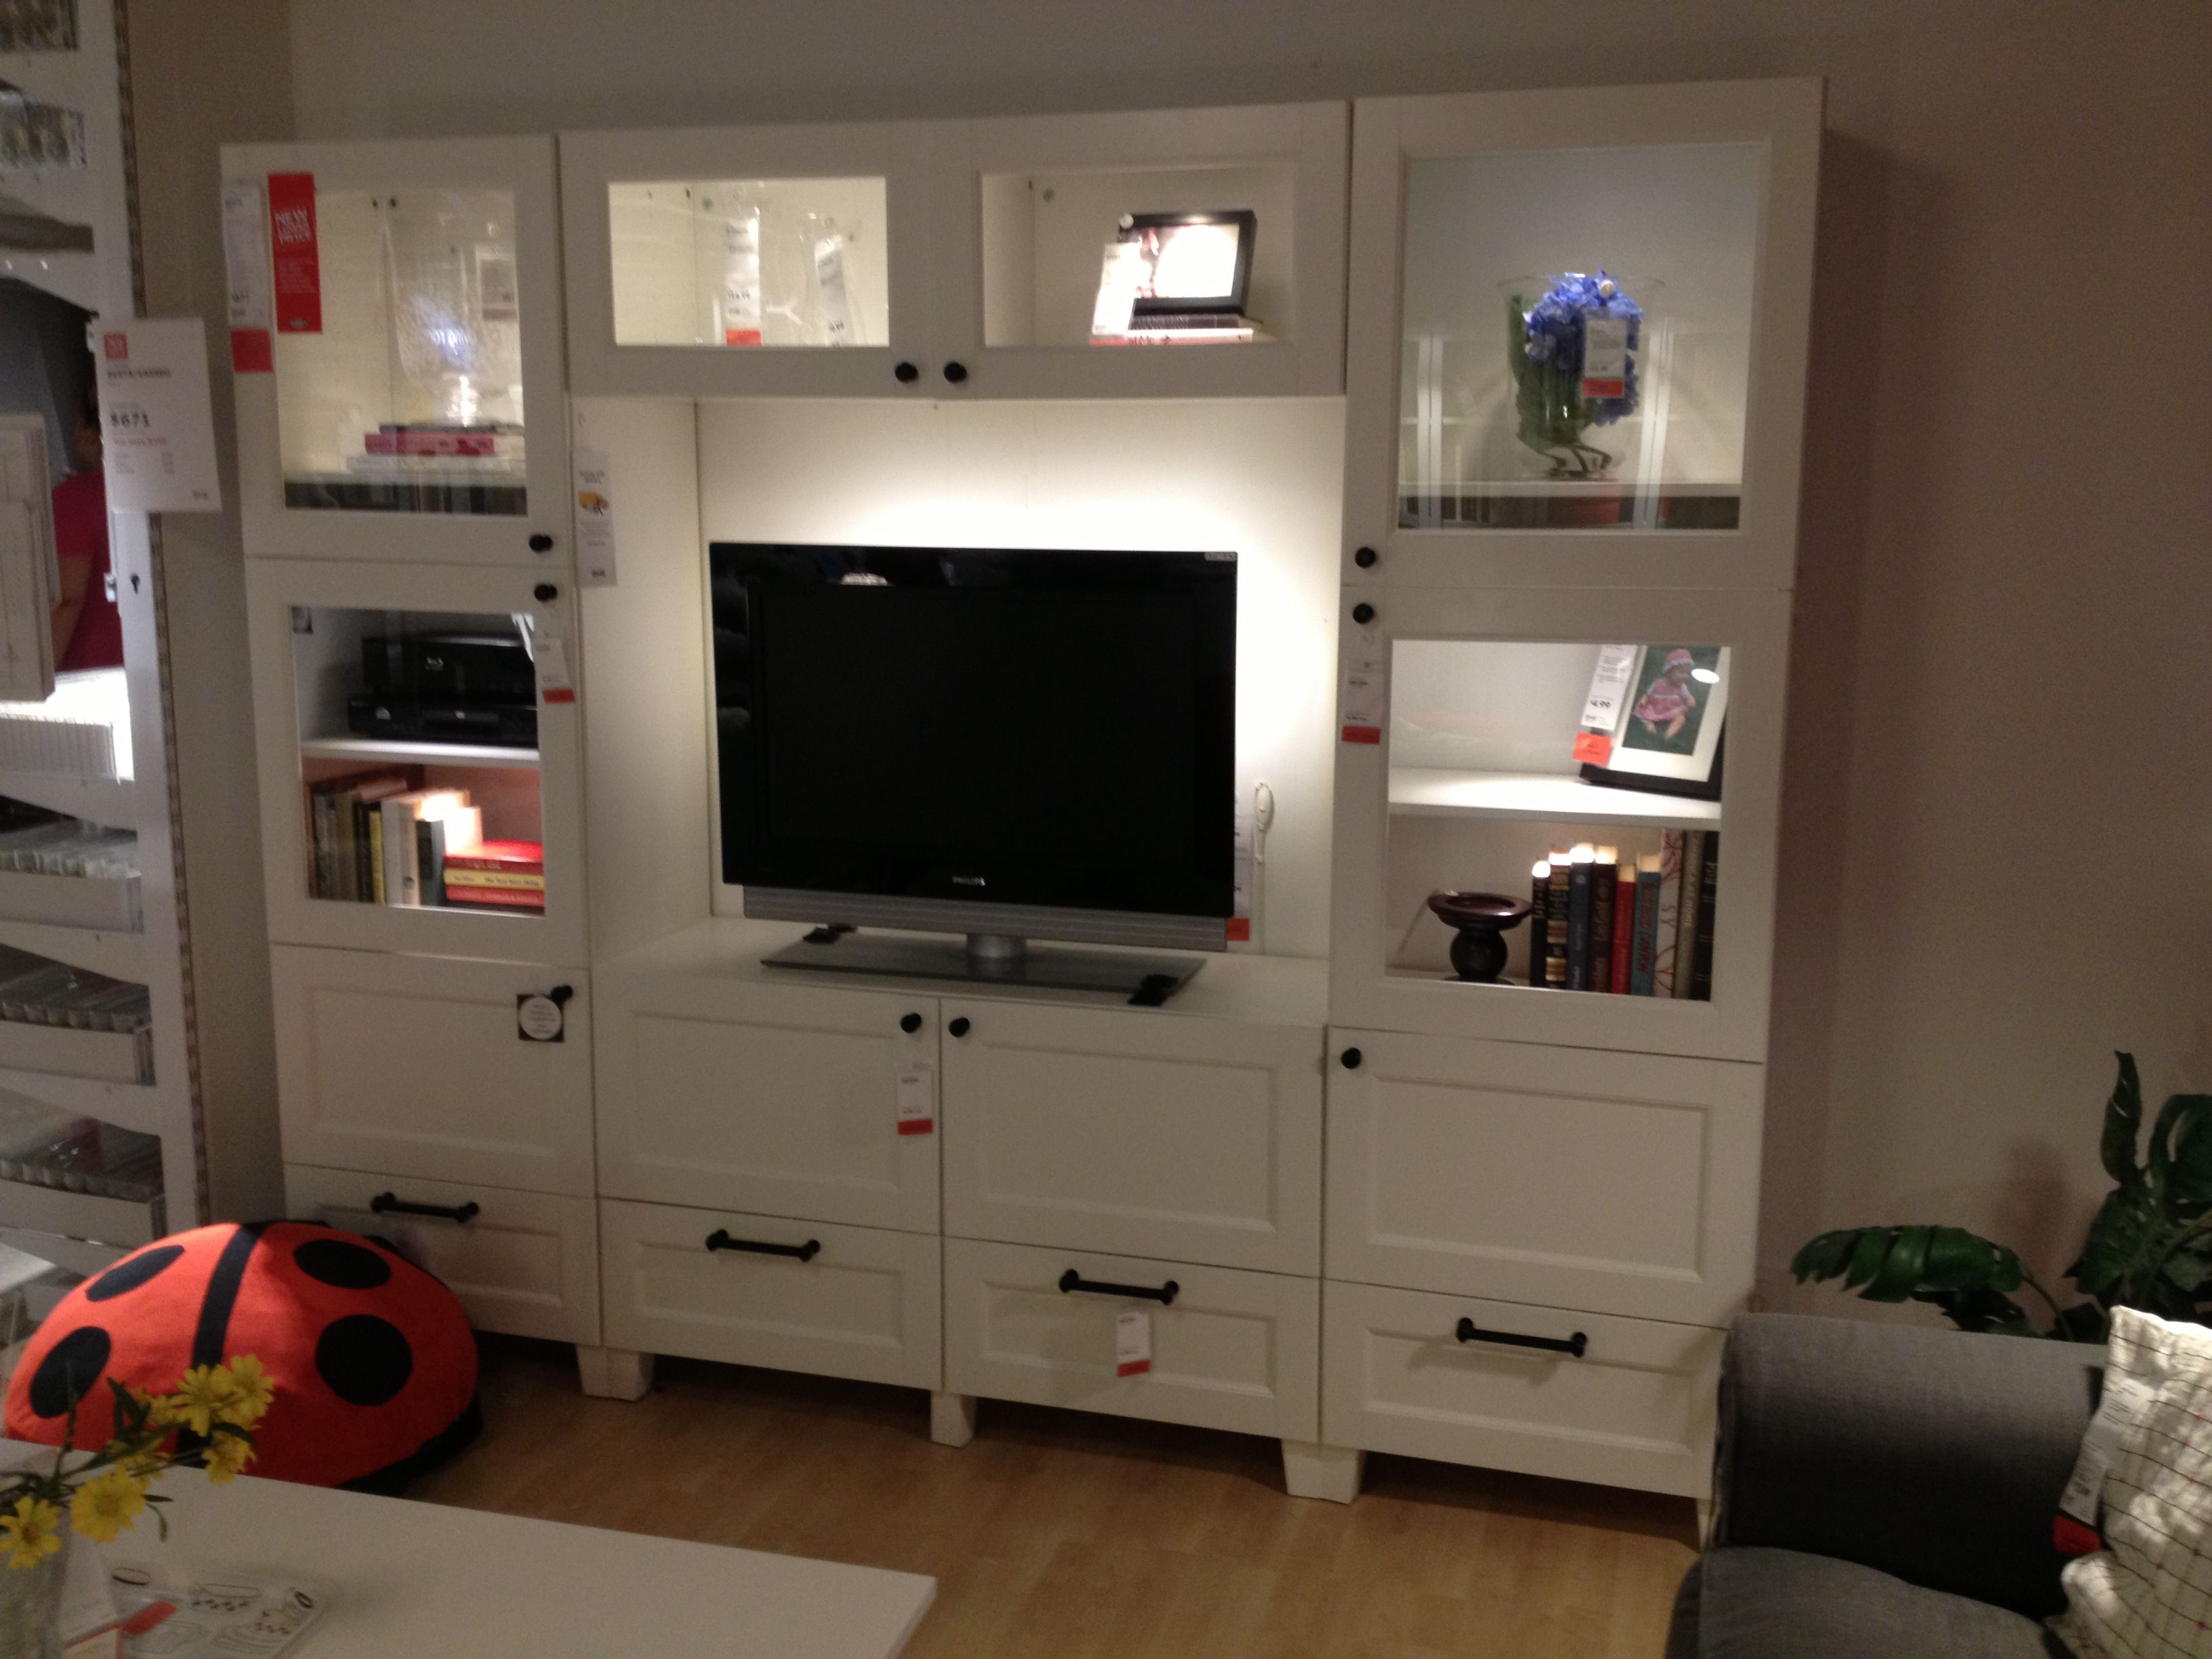 ikea media center love the doors on the shelves ikea entertainment centers pinterest. Black Bedroom Furniture Sets. Home Design Ideas